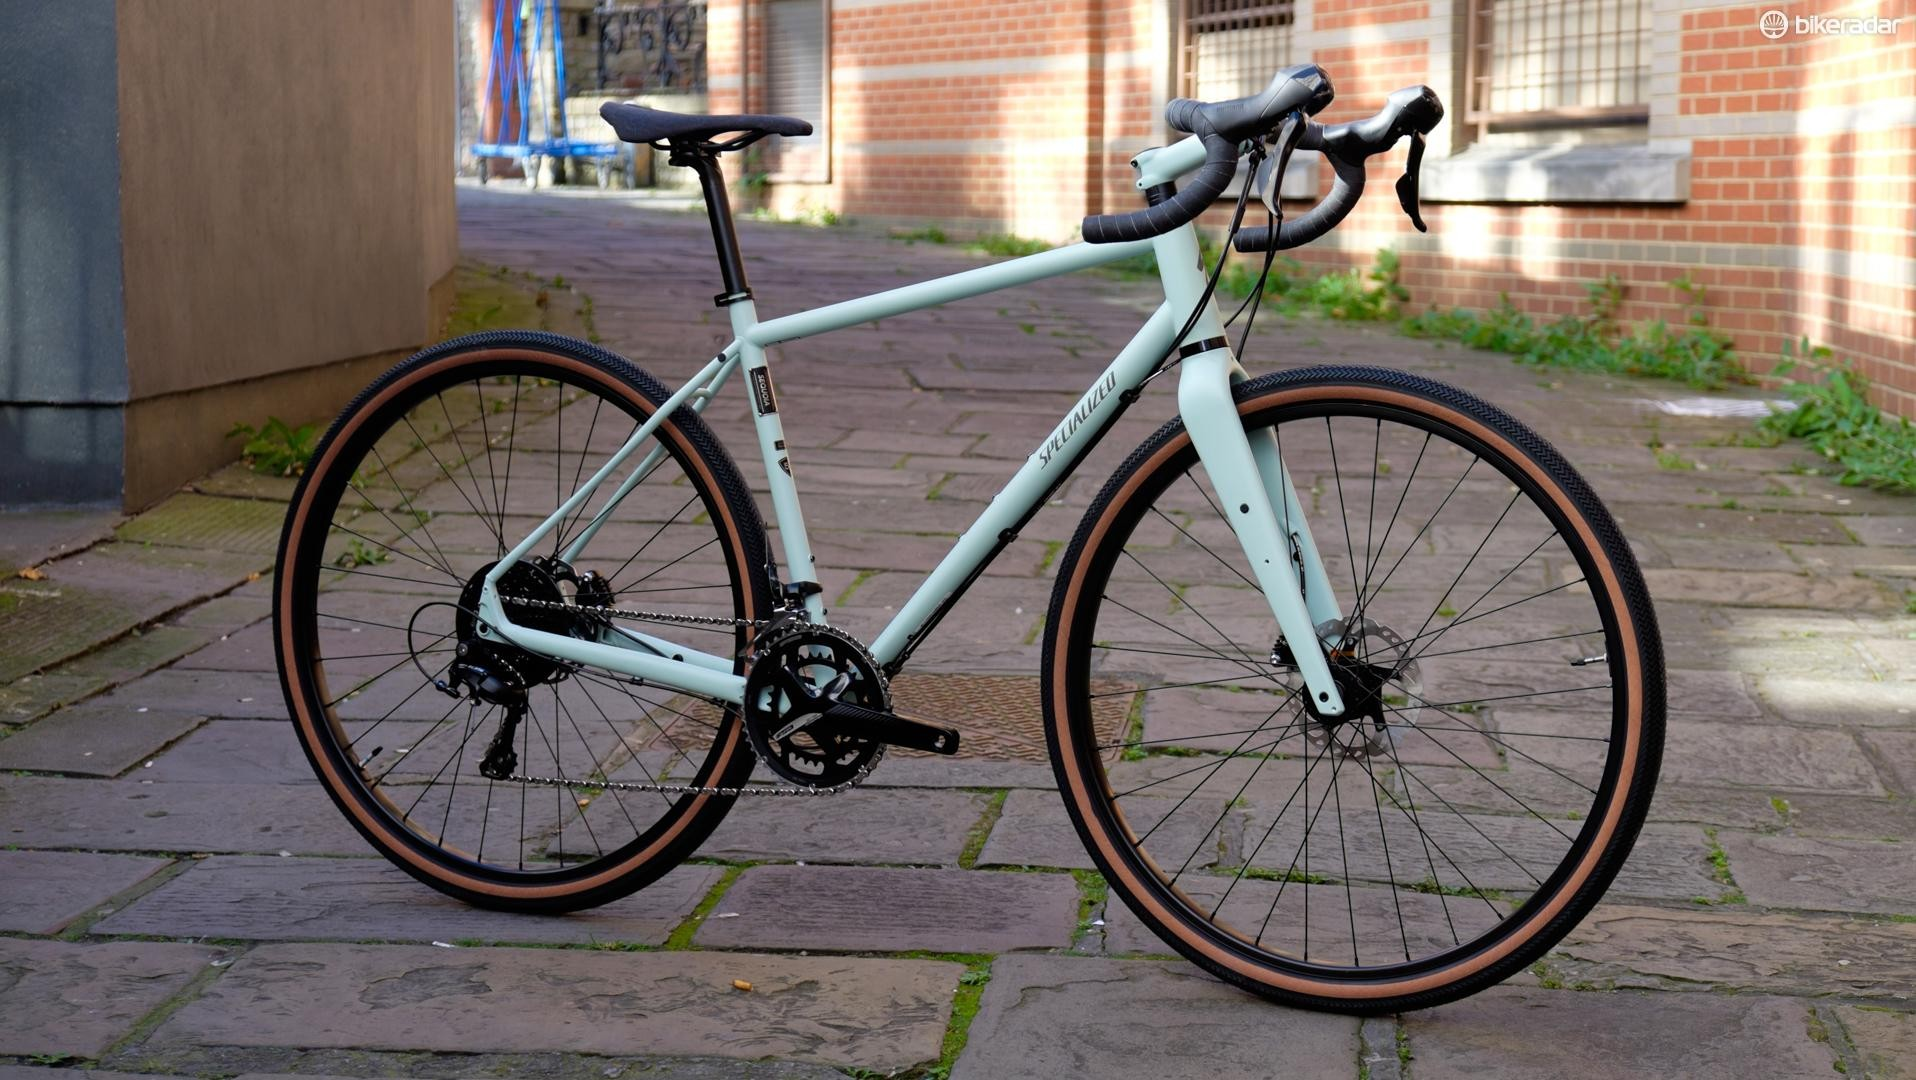 Retailing at £1,500 / US$2,000 the Sequoia Elite is refreshingly affordable